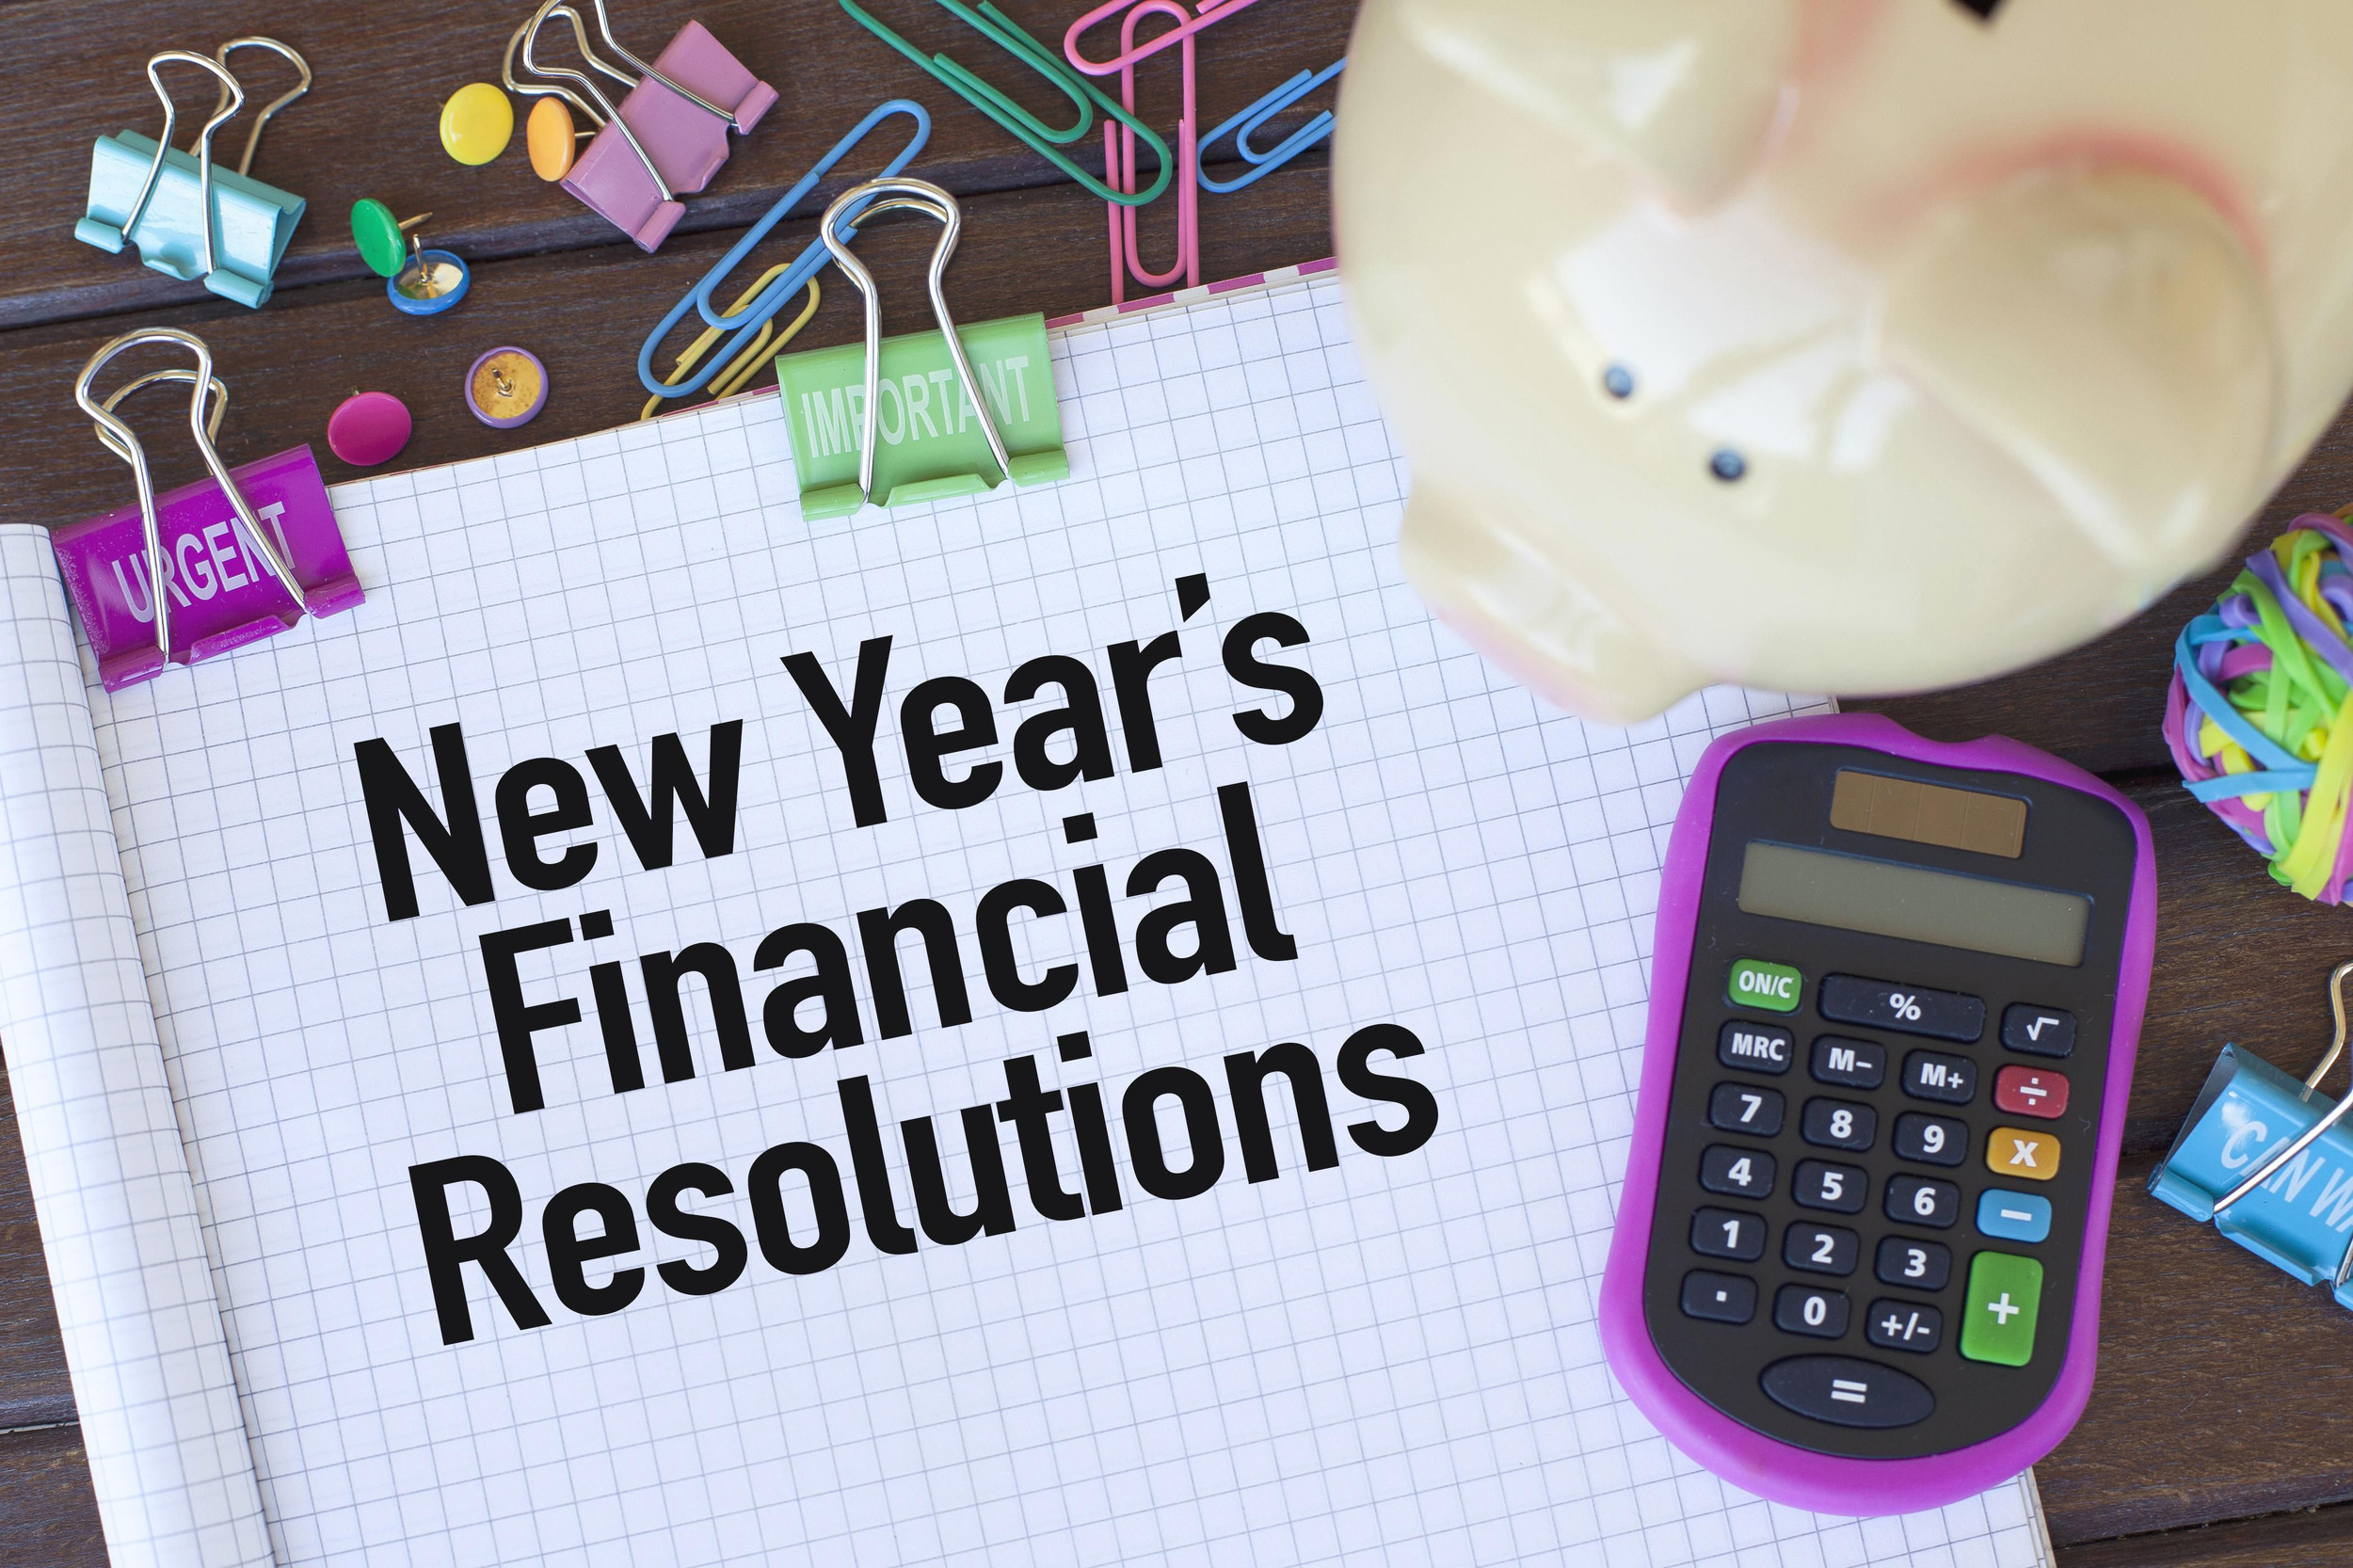 Want to get financially healthy in 2021? 5 simple New Year's resolutions